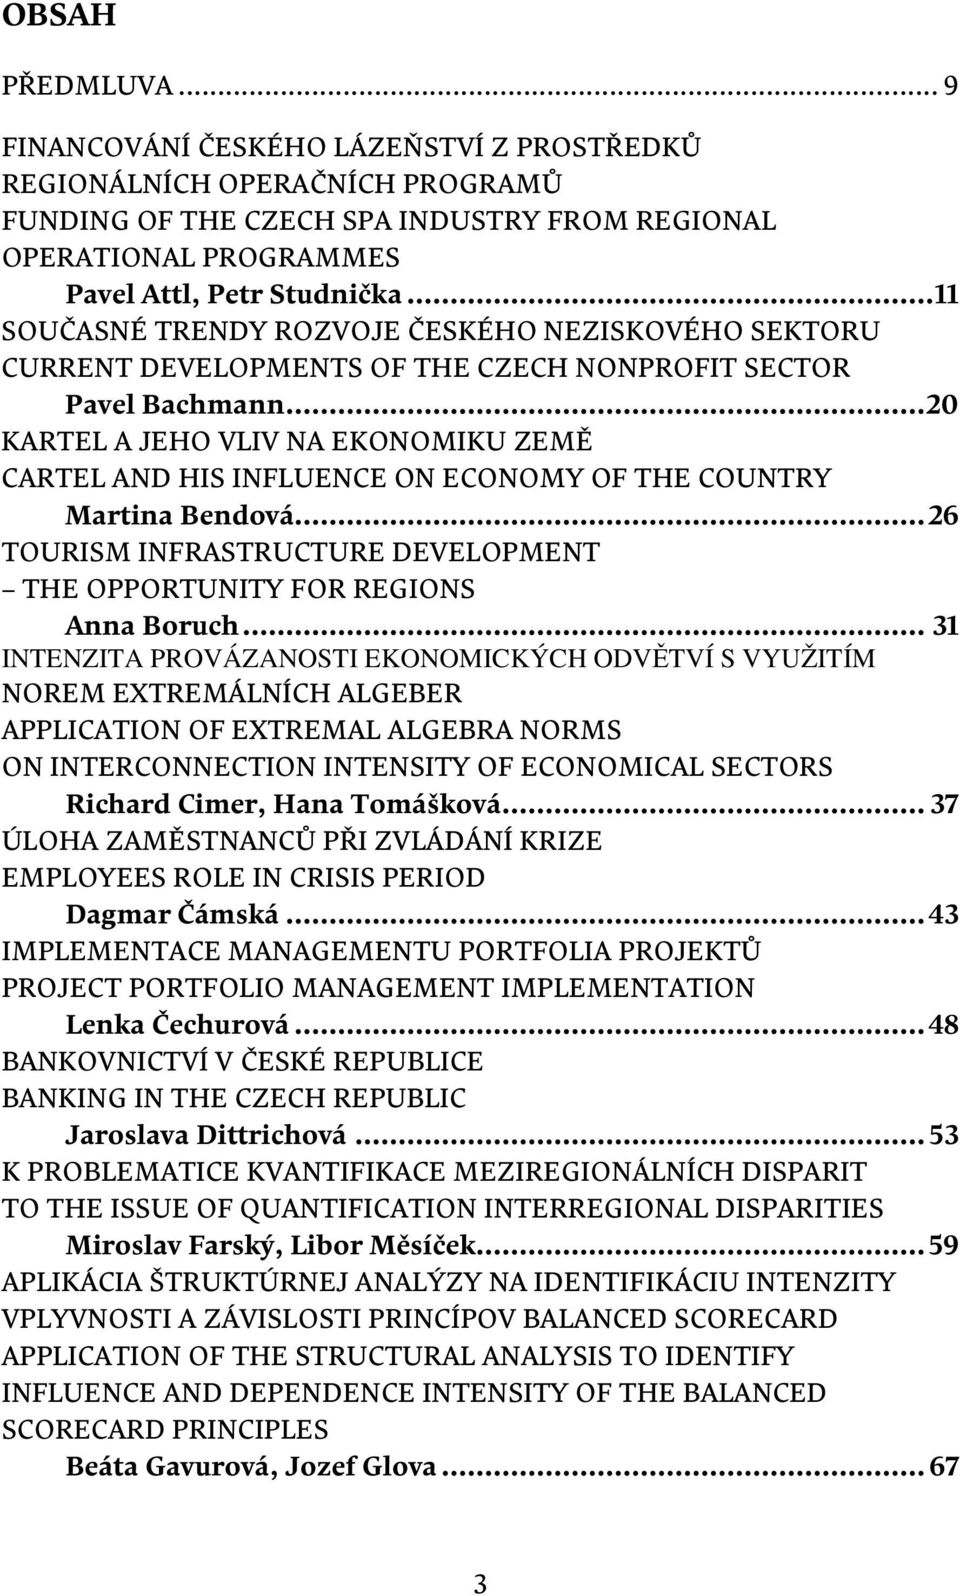 ..20 KARTEL A JEHO VLIV NA EKONOMIKU ZEMĚ CARTEL AND HIS INFLUENCE ON ECONOMY OF THE COUNTRY Martina Bendová... 26 TOURISM INFRASTRUCTURE DEVELOPMENT THE OPPORTUNITY FOR REGIONS Anna Boruch.